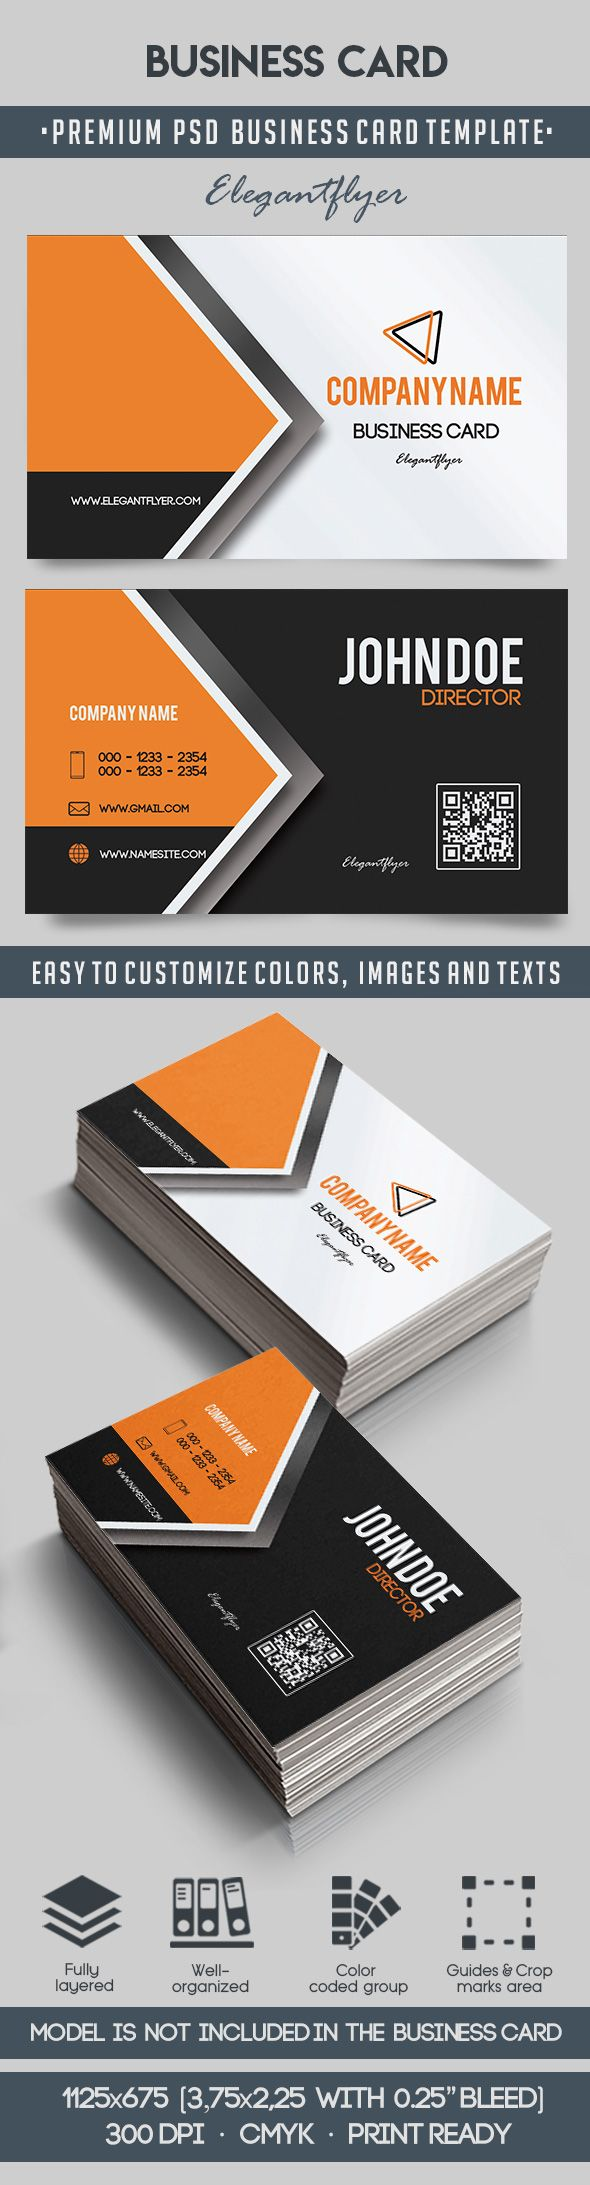 Business Card – Premium Business Card Templates PSD – by ElegantFlyer